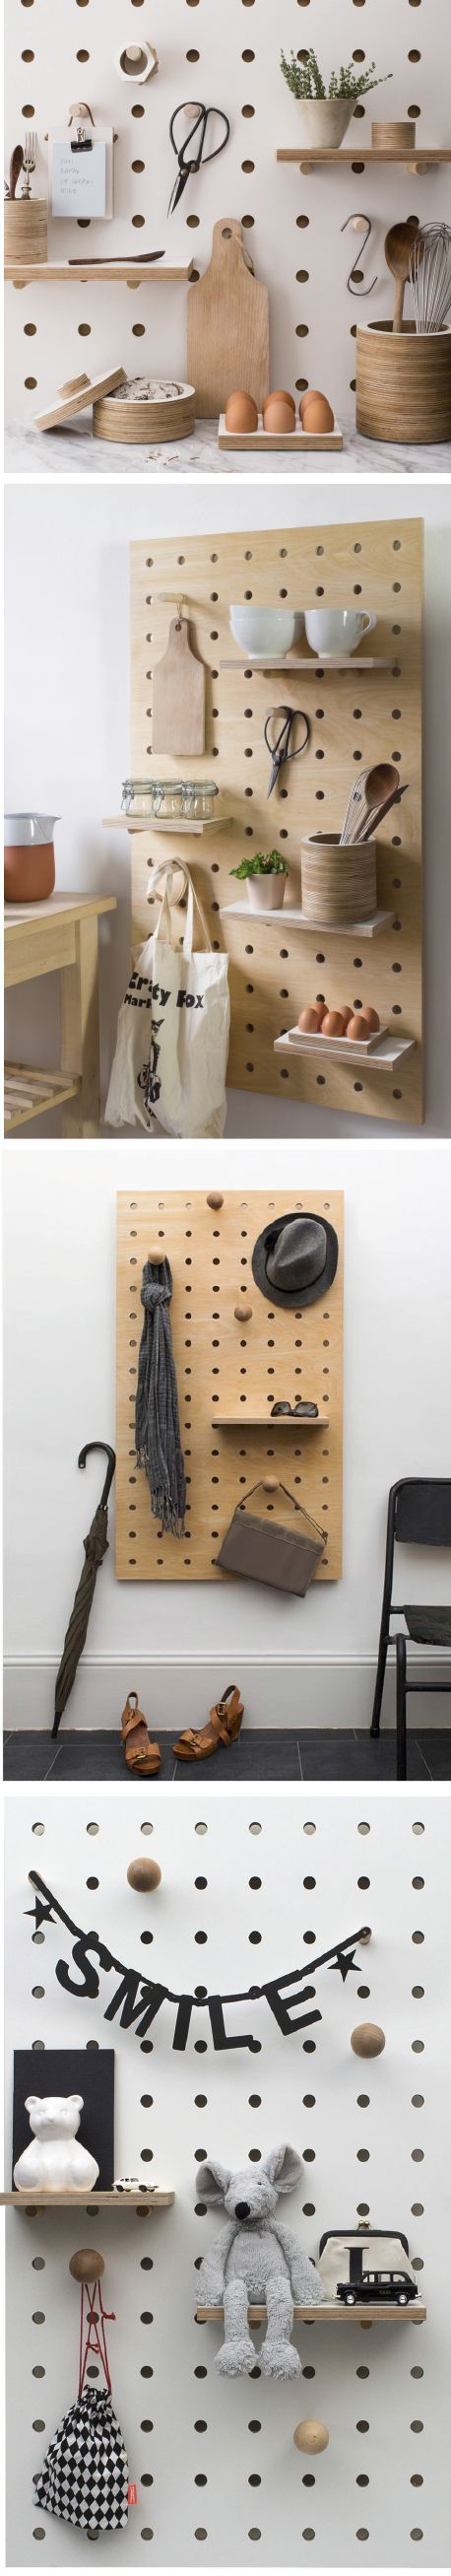 Pegboard Kitchen 17 Best Ideas About Peg Board Kitchens On Pinterest Shop Storage